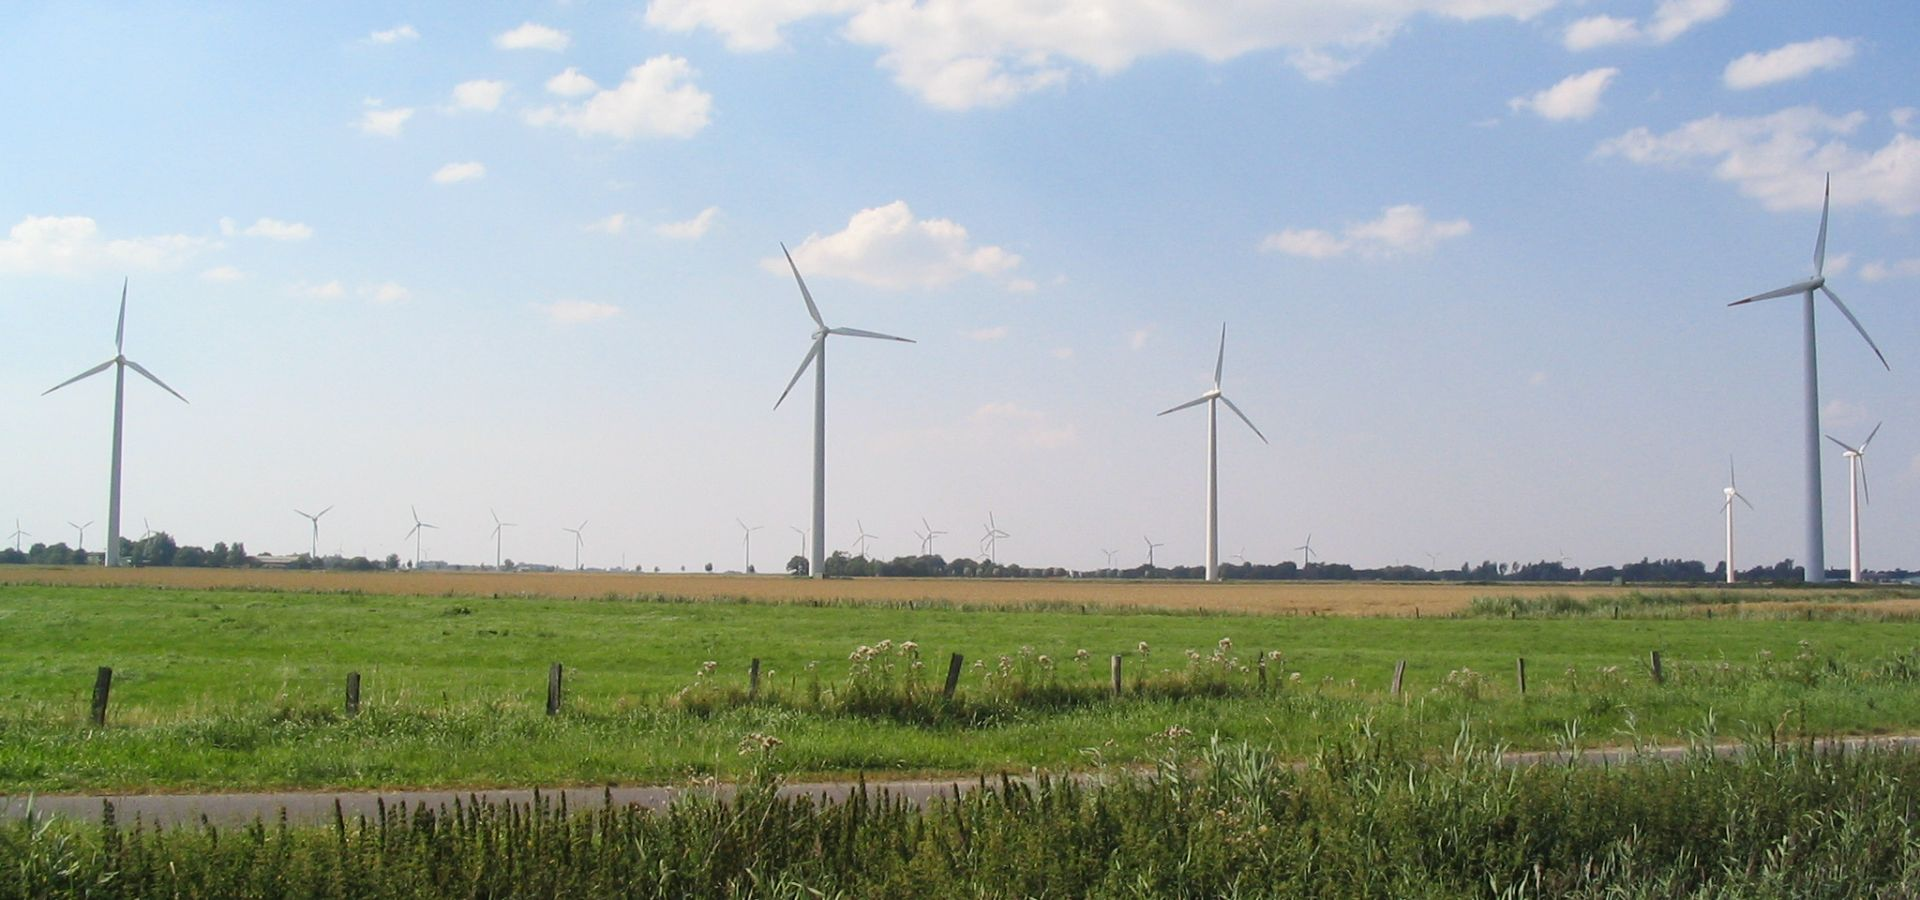 Fiasco, or success? Wind farm in Neuenkirchen, Germany (Photo by Dirk Ingo Franke, edited, CC BY-SA 1.0)